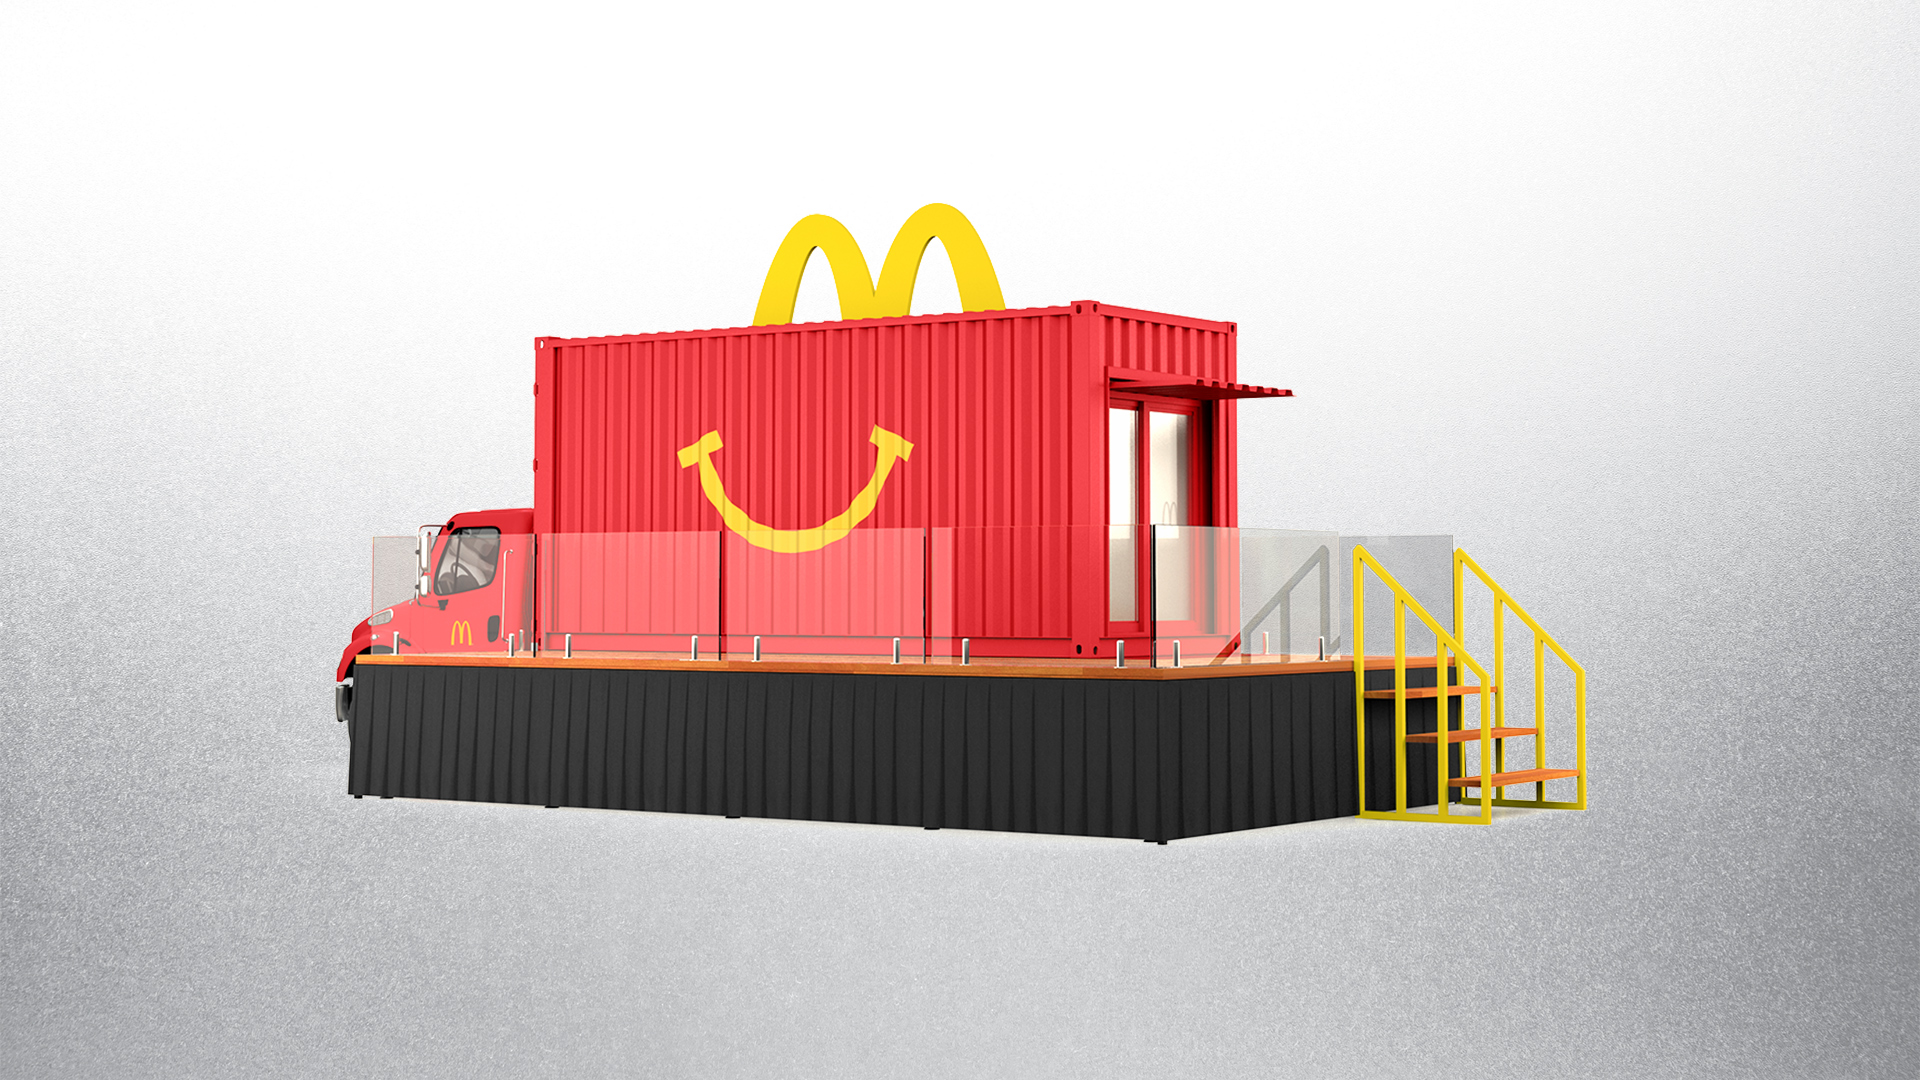 McDonald's Happy Meal Red 20' Shipping Container with Deck